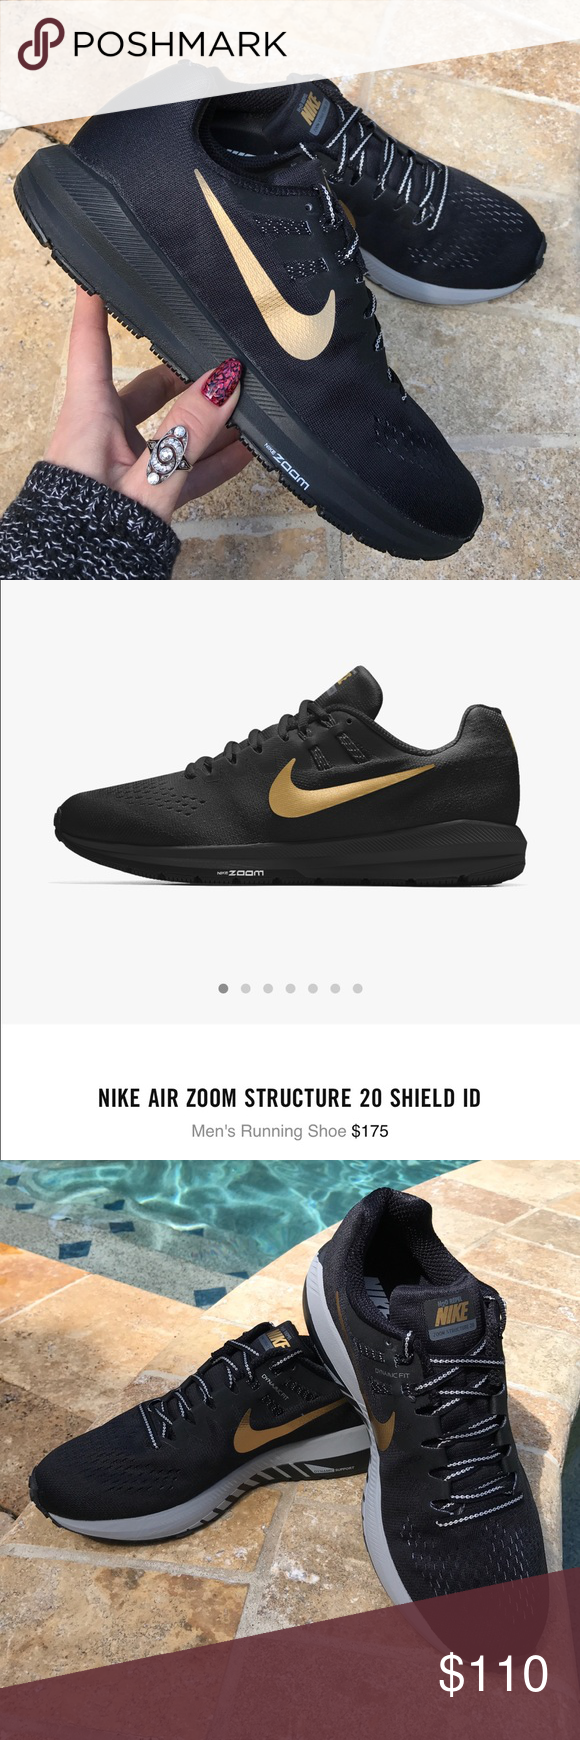 NWT Nike ID zoom structure 20 Brand new no box,price is firm!!size 8.5 N  black with gold swoosh Always there to support you, the Nike Air Zoom  Structure 20 ...